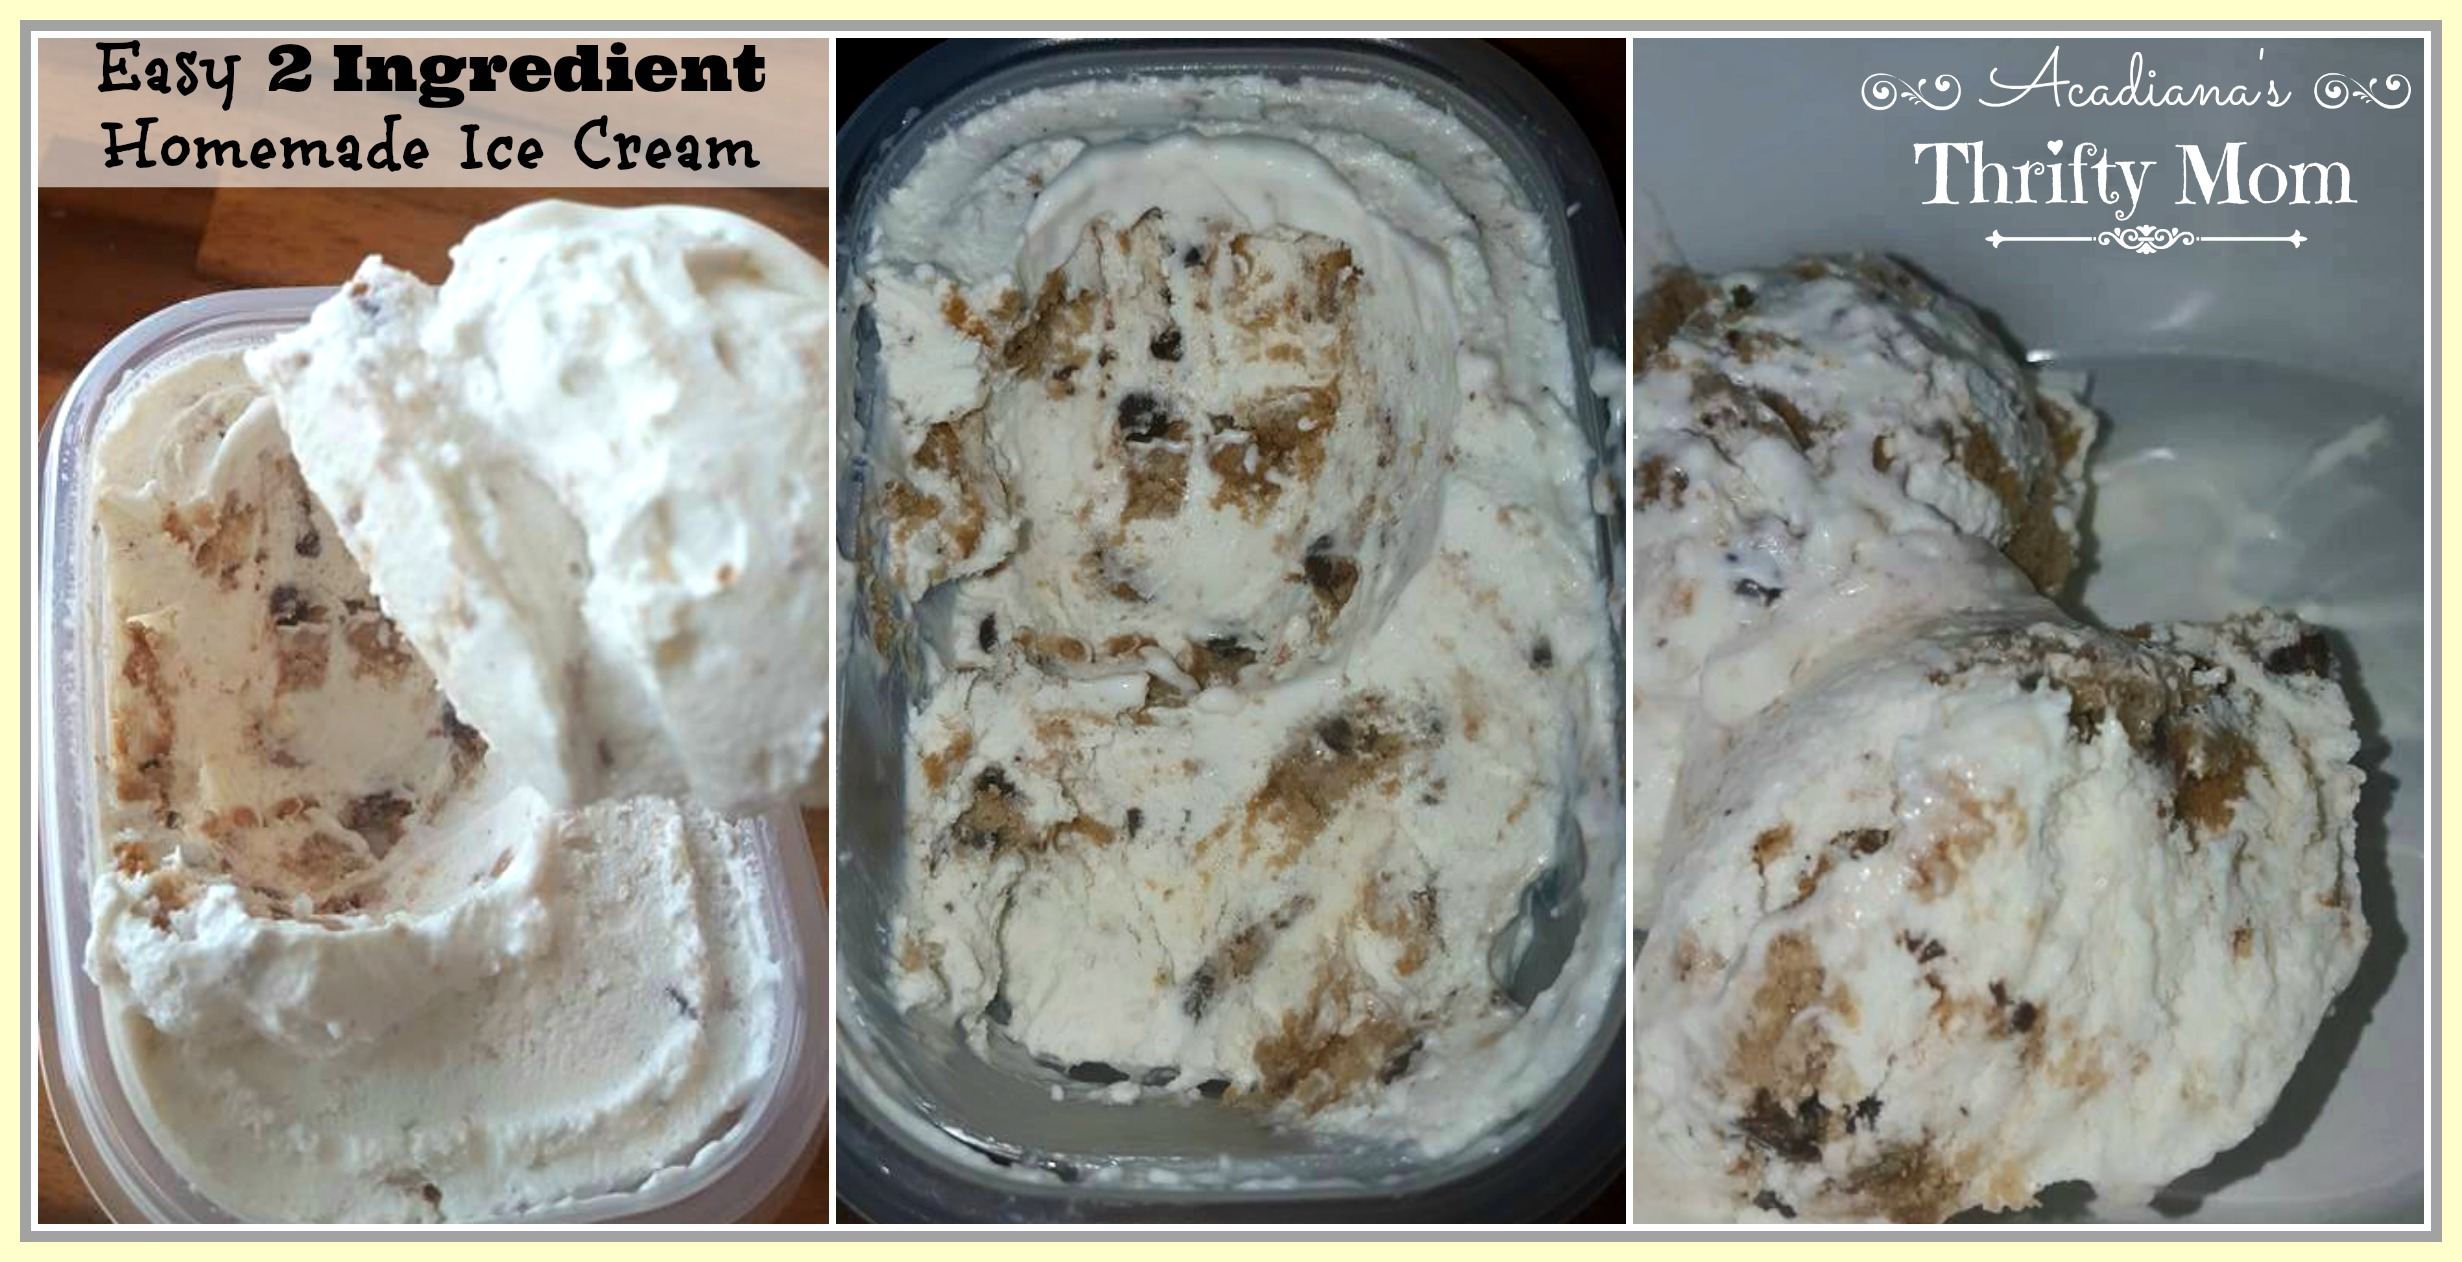 Easy 2 Ingredient Homemade Ice Cream